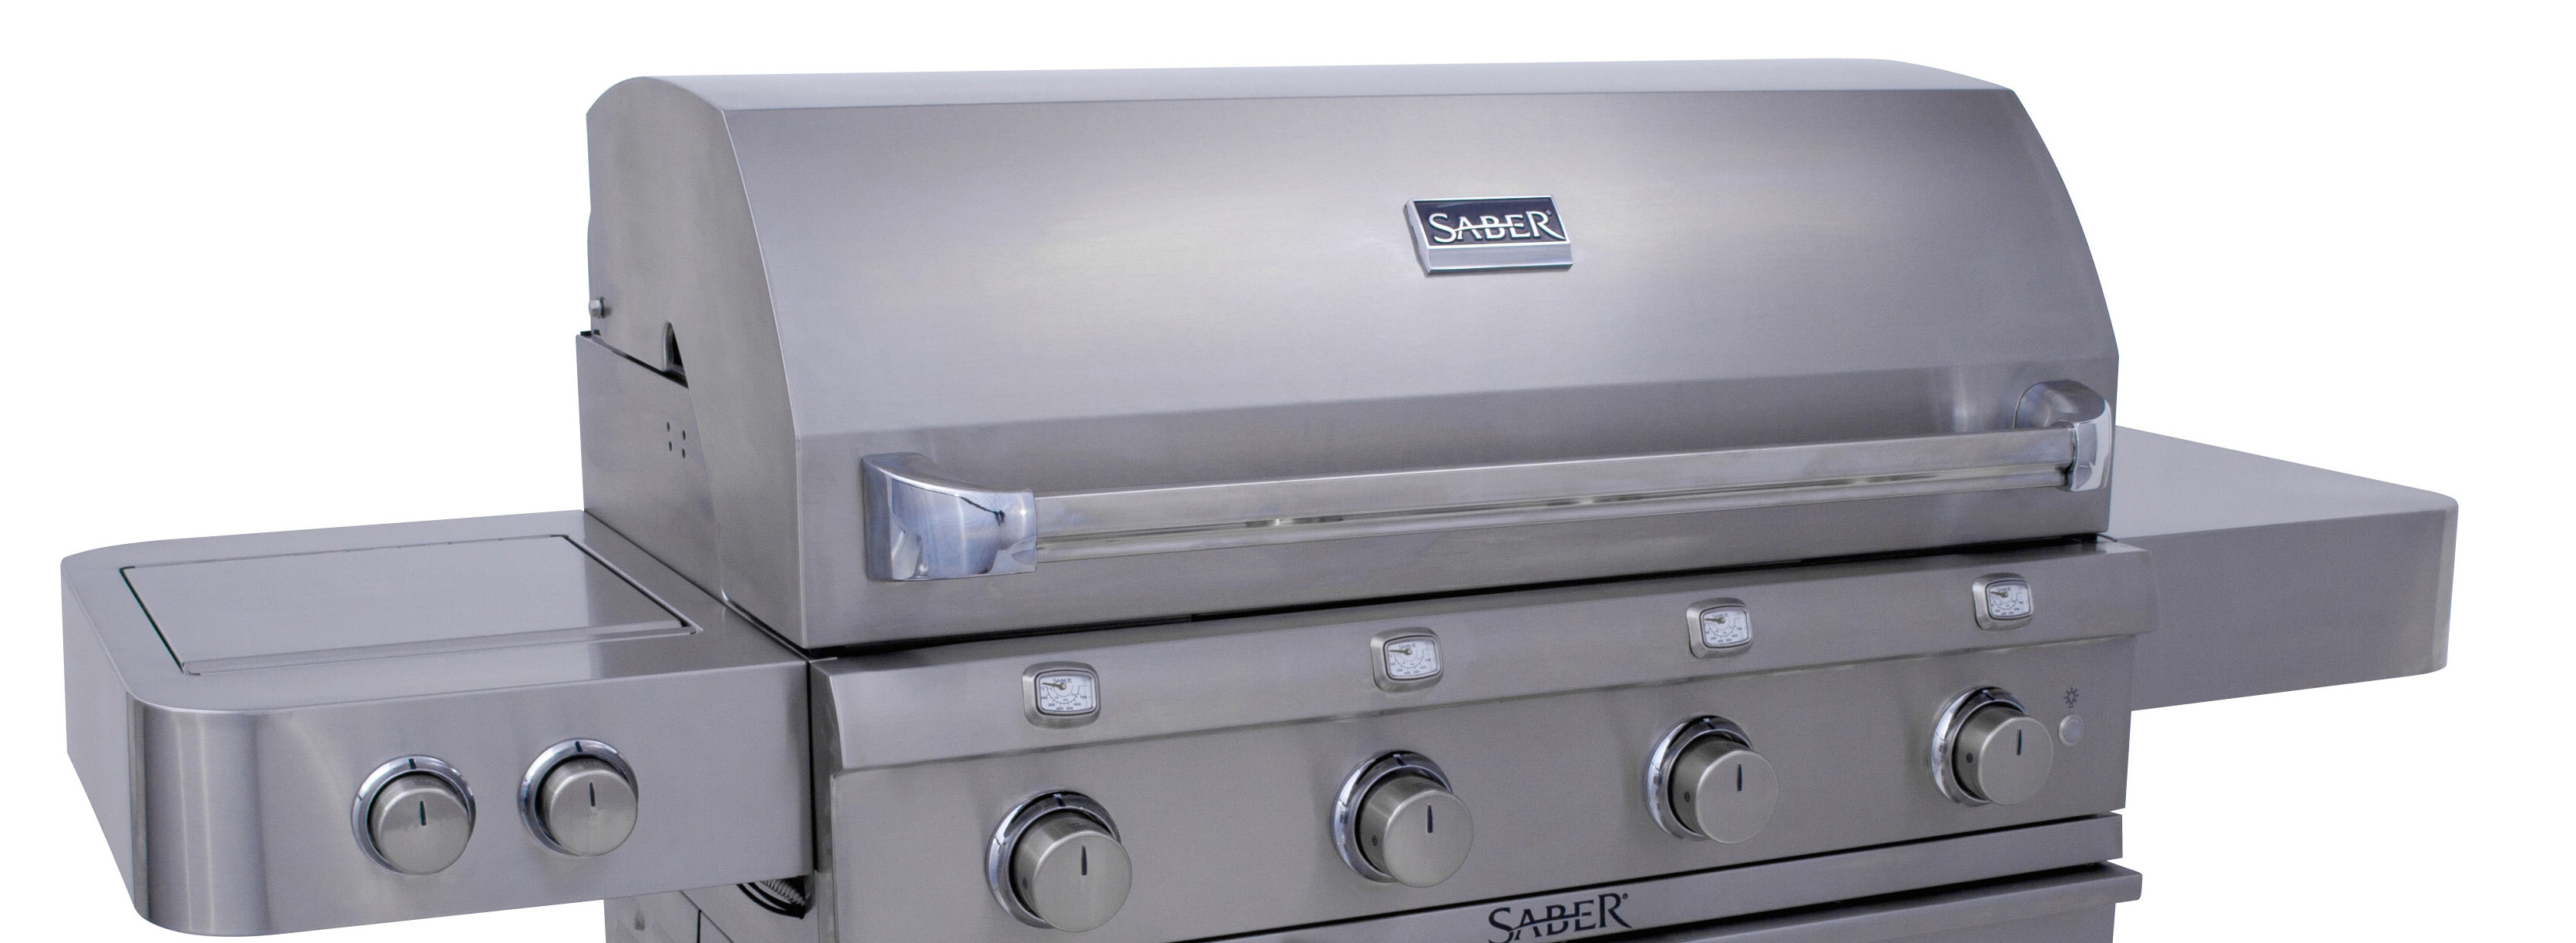 Saber Gas Grills Recalled Over Potential Flame Bursts